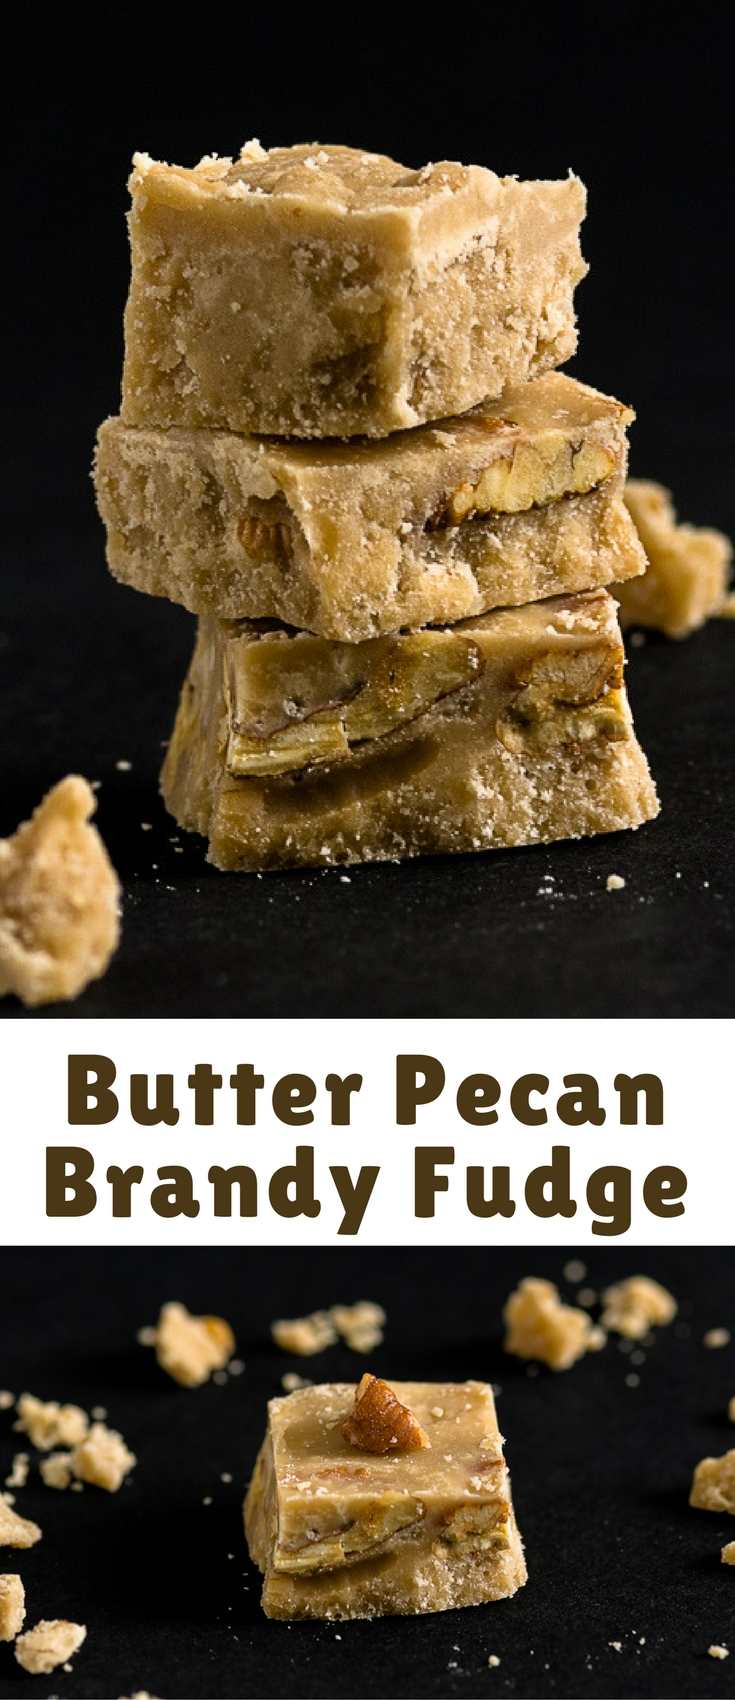 Fudge is so easy to make and it's the perfect thing for a Christmas gift. Make this Butter Pecan Brandy Fudge for someone you love this holiday season. If you don't devour it first! ????